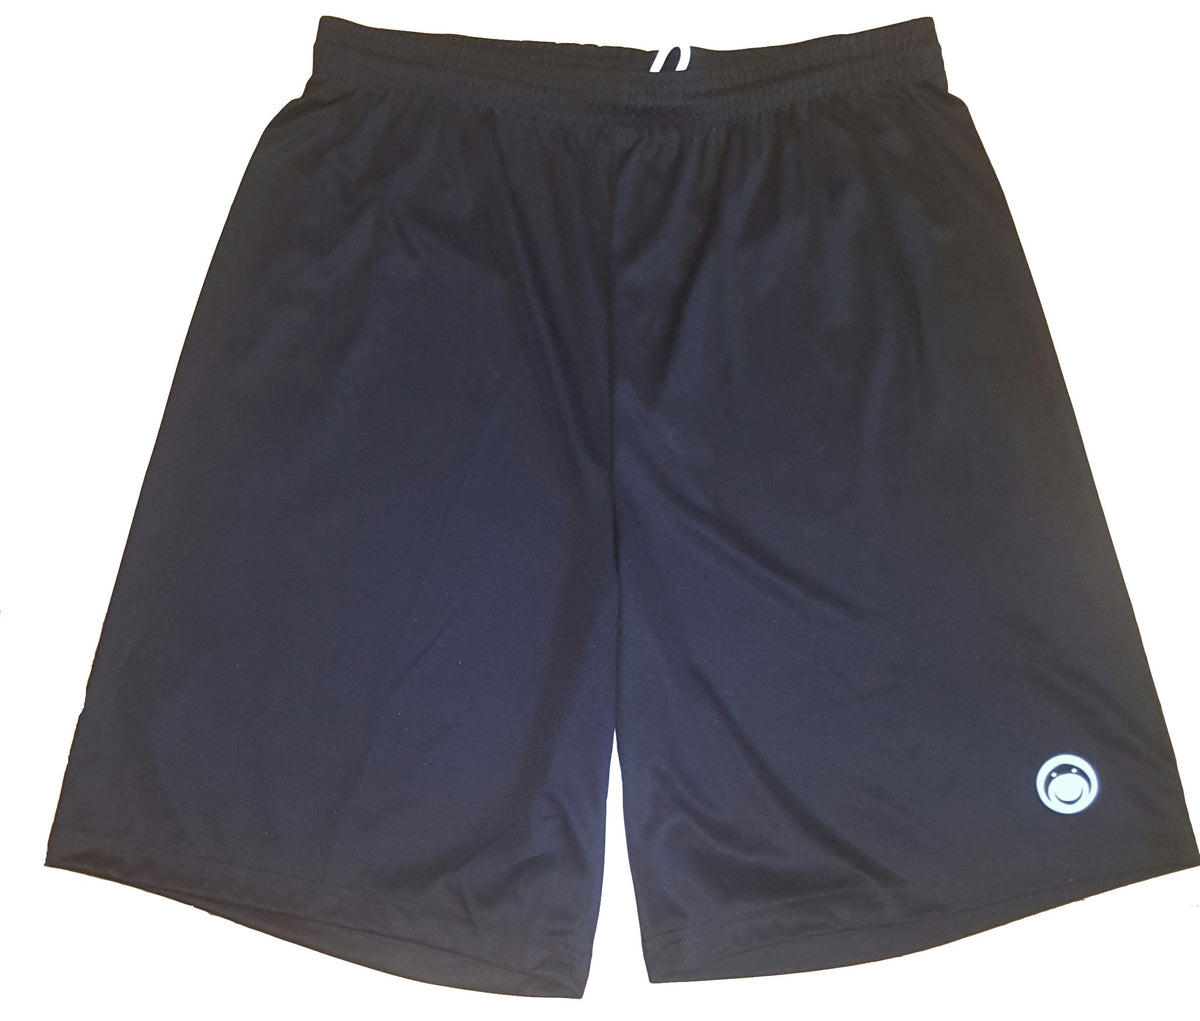 Bucaleany Training Shorts - BUCALEANY